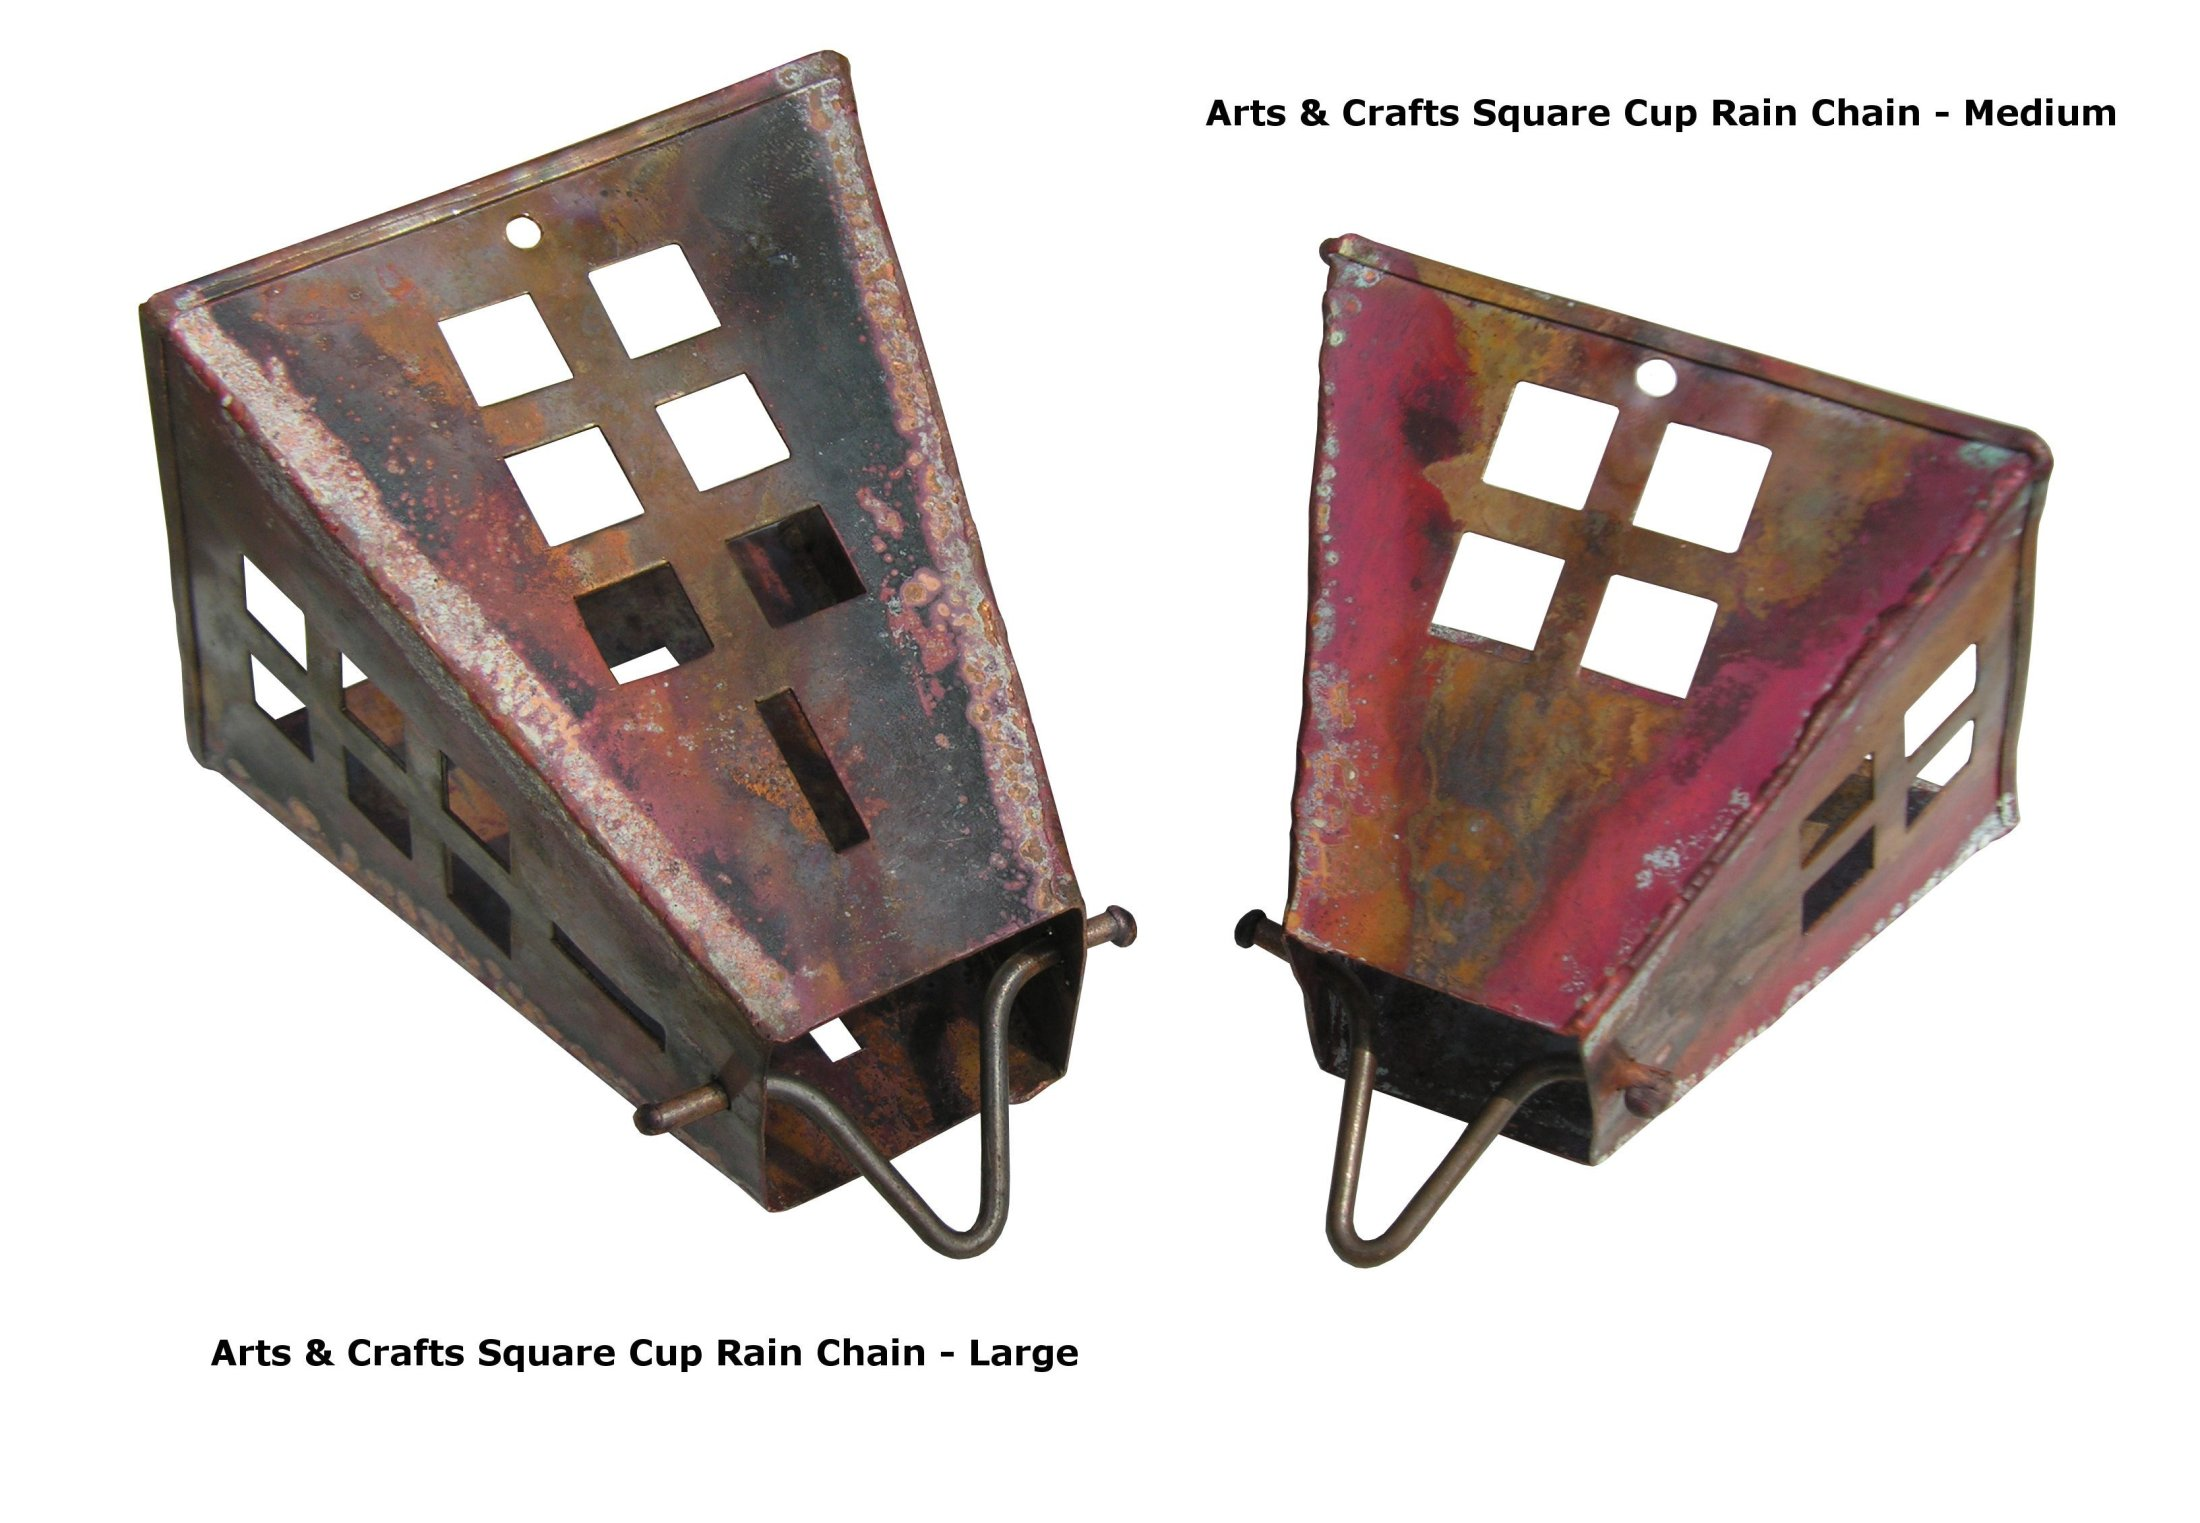 Difference Between Large and Medium | Copper Rain Chain